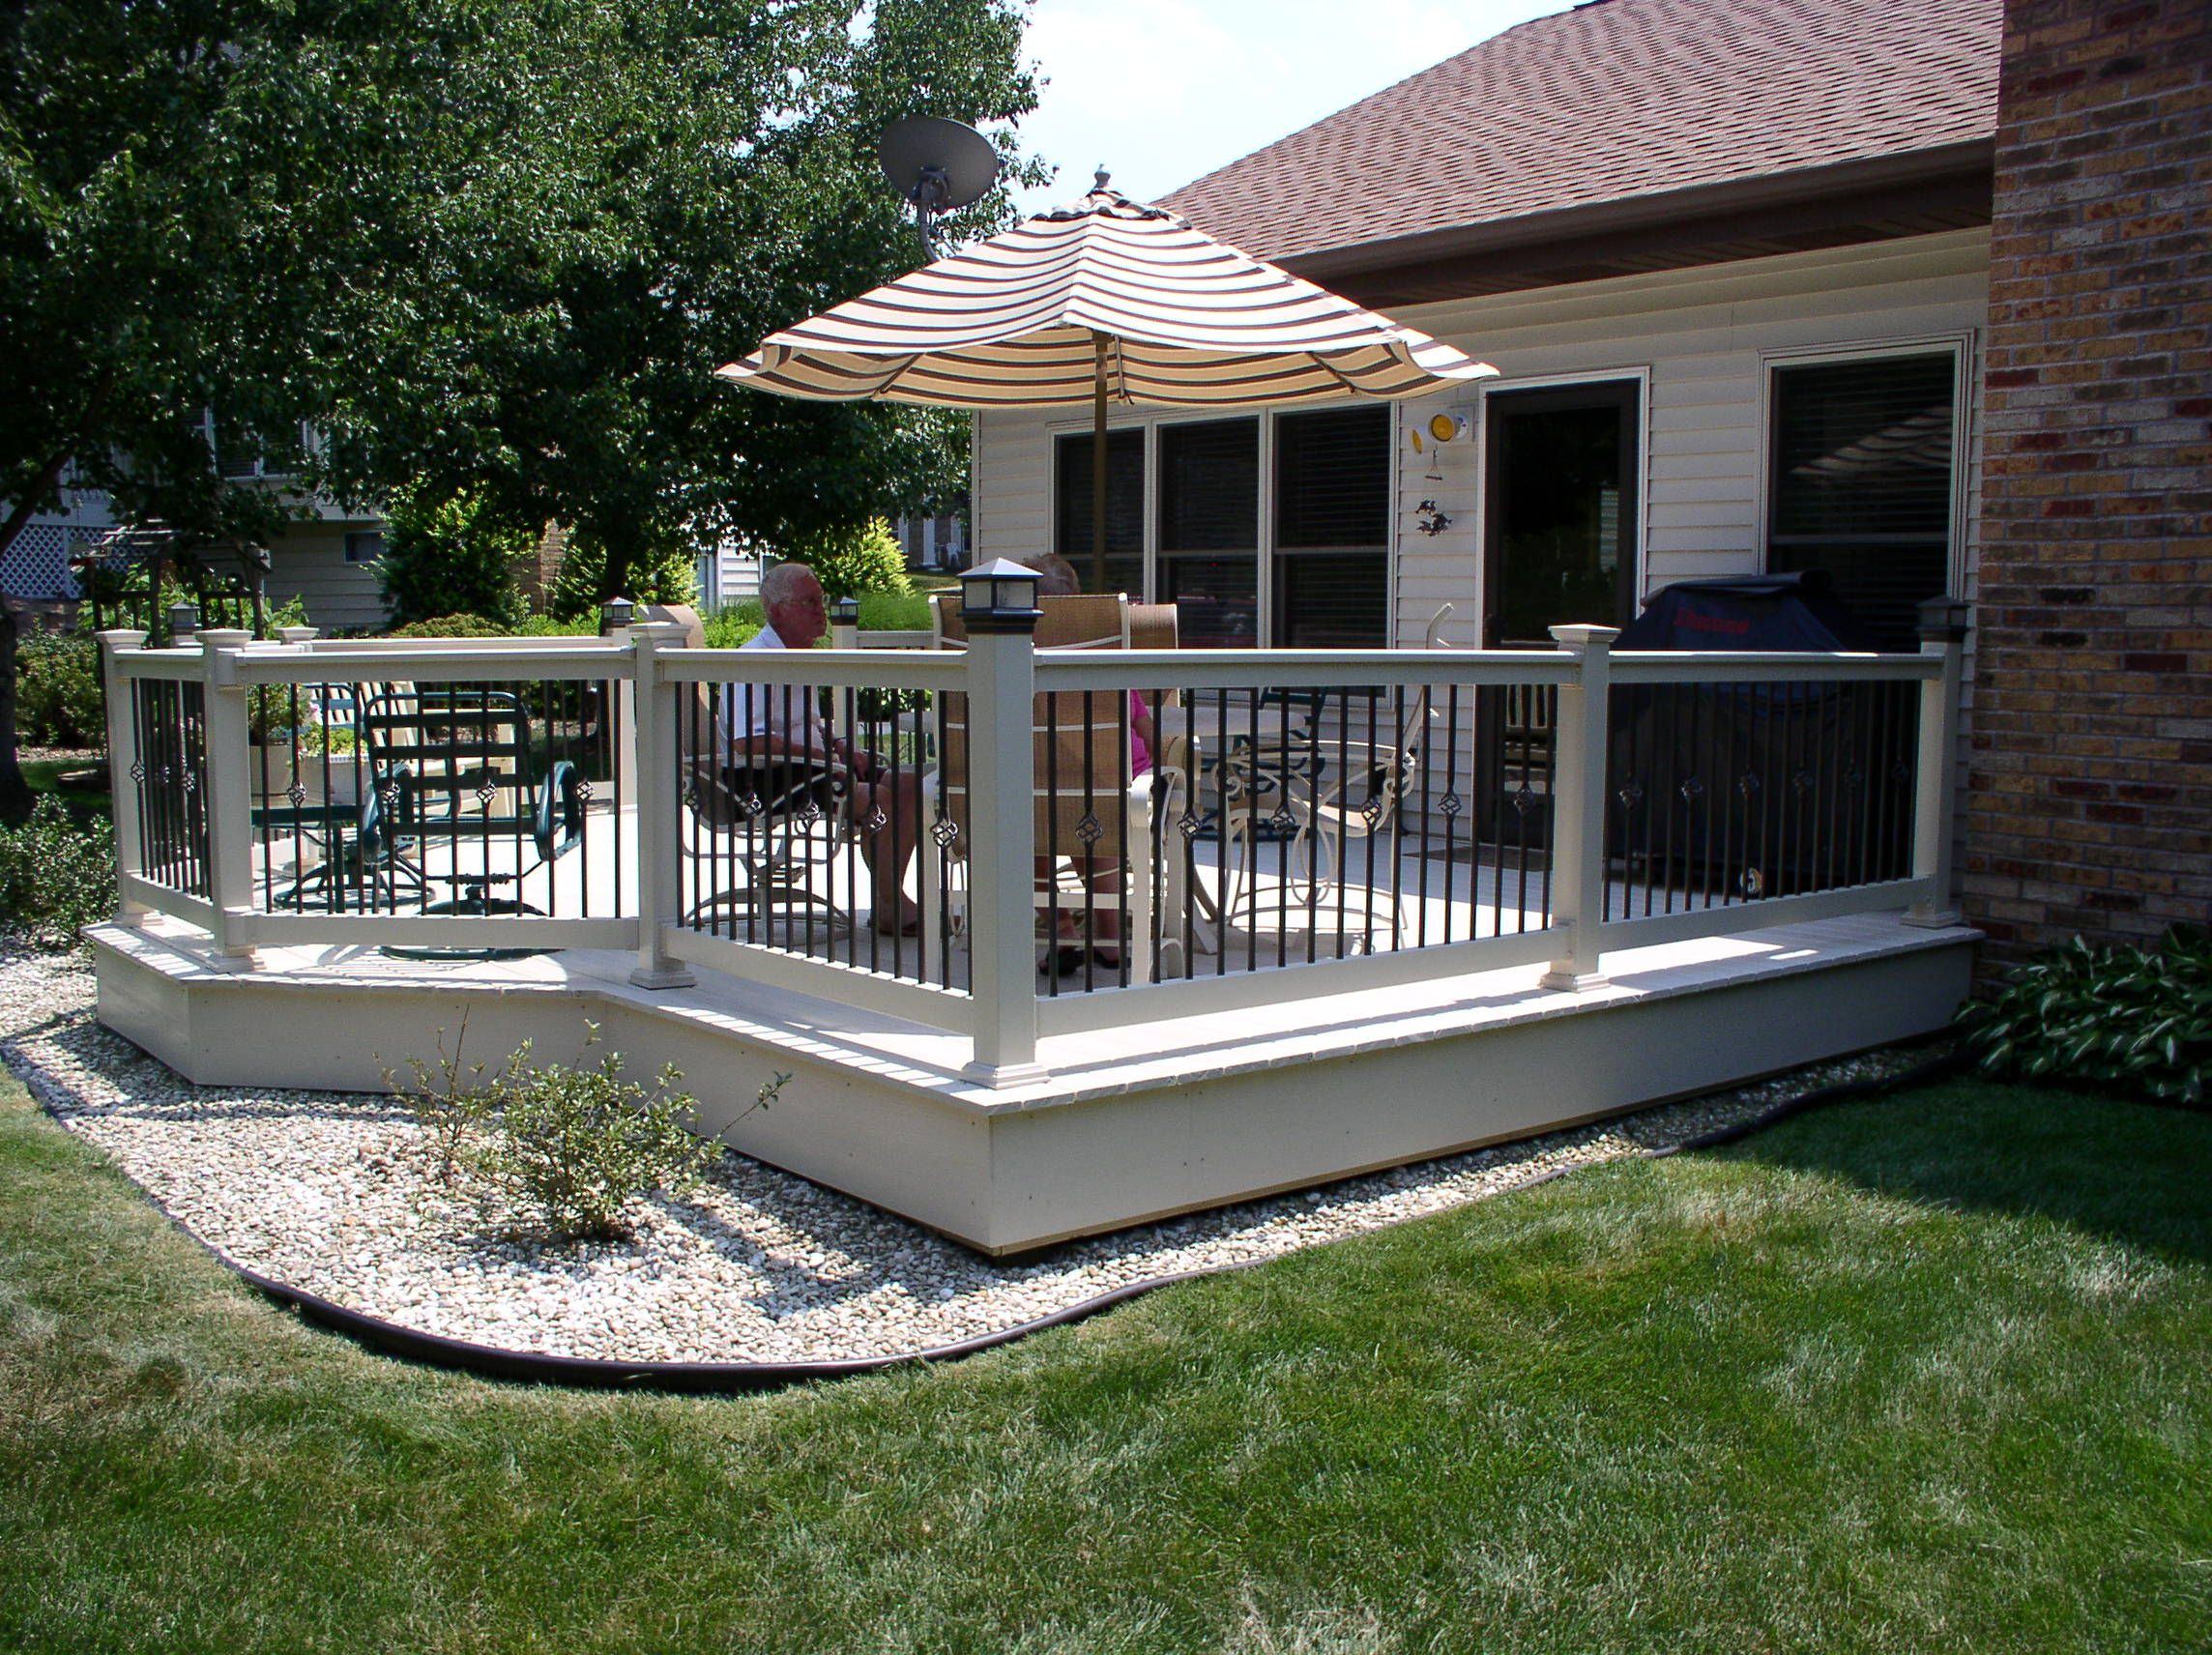 Vekadeck Vinyl Deck And Railing With Aluminum Balusters By Chesterfield  Fence U0026 Deck ...